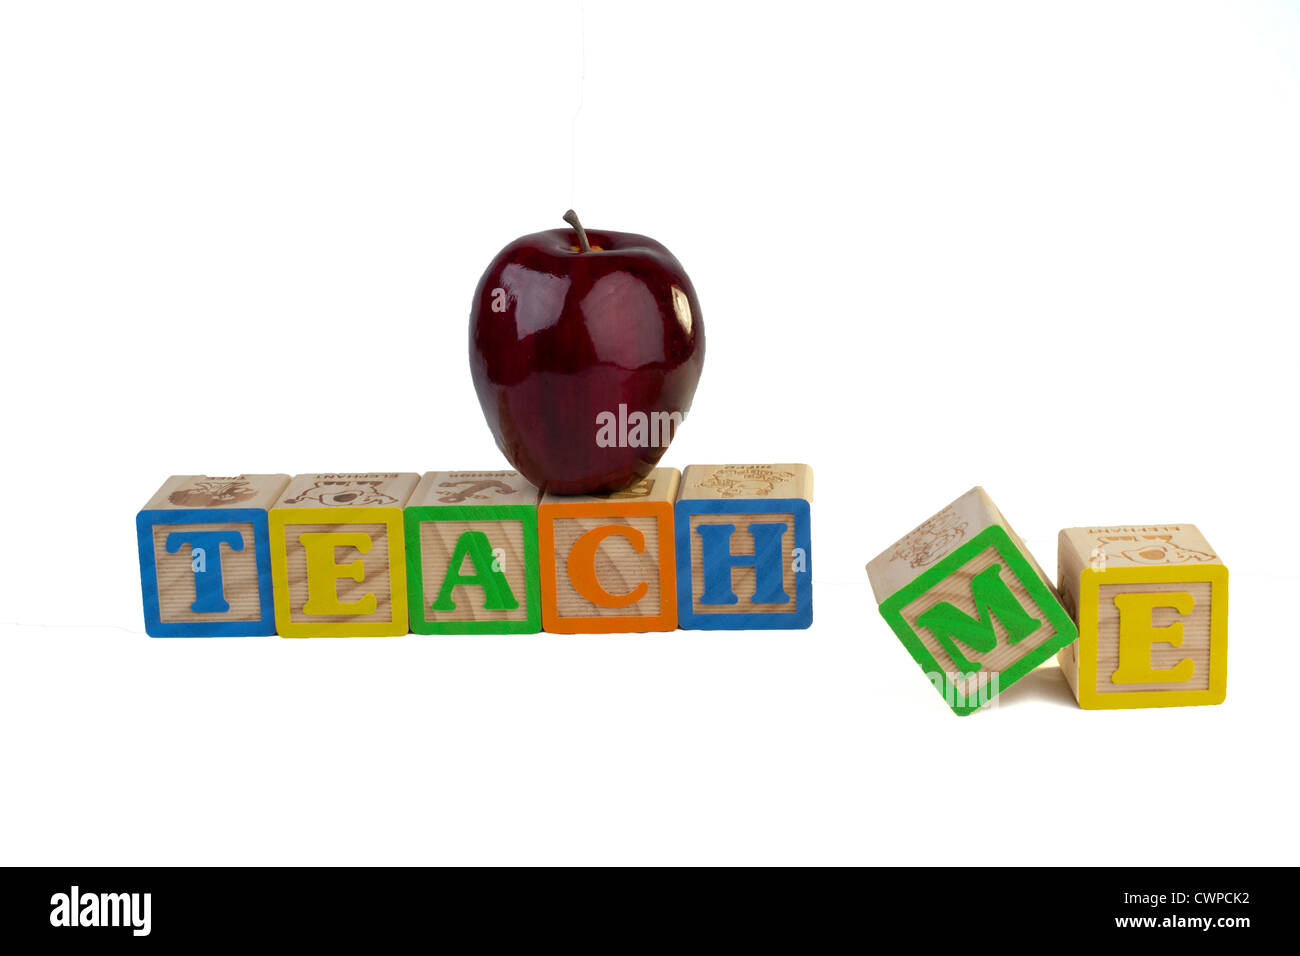 Teach me - Stock Image